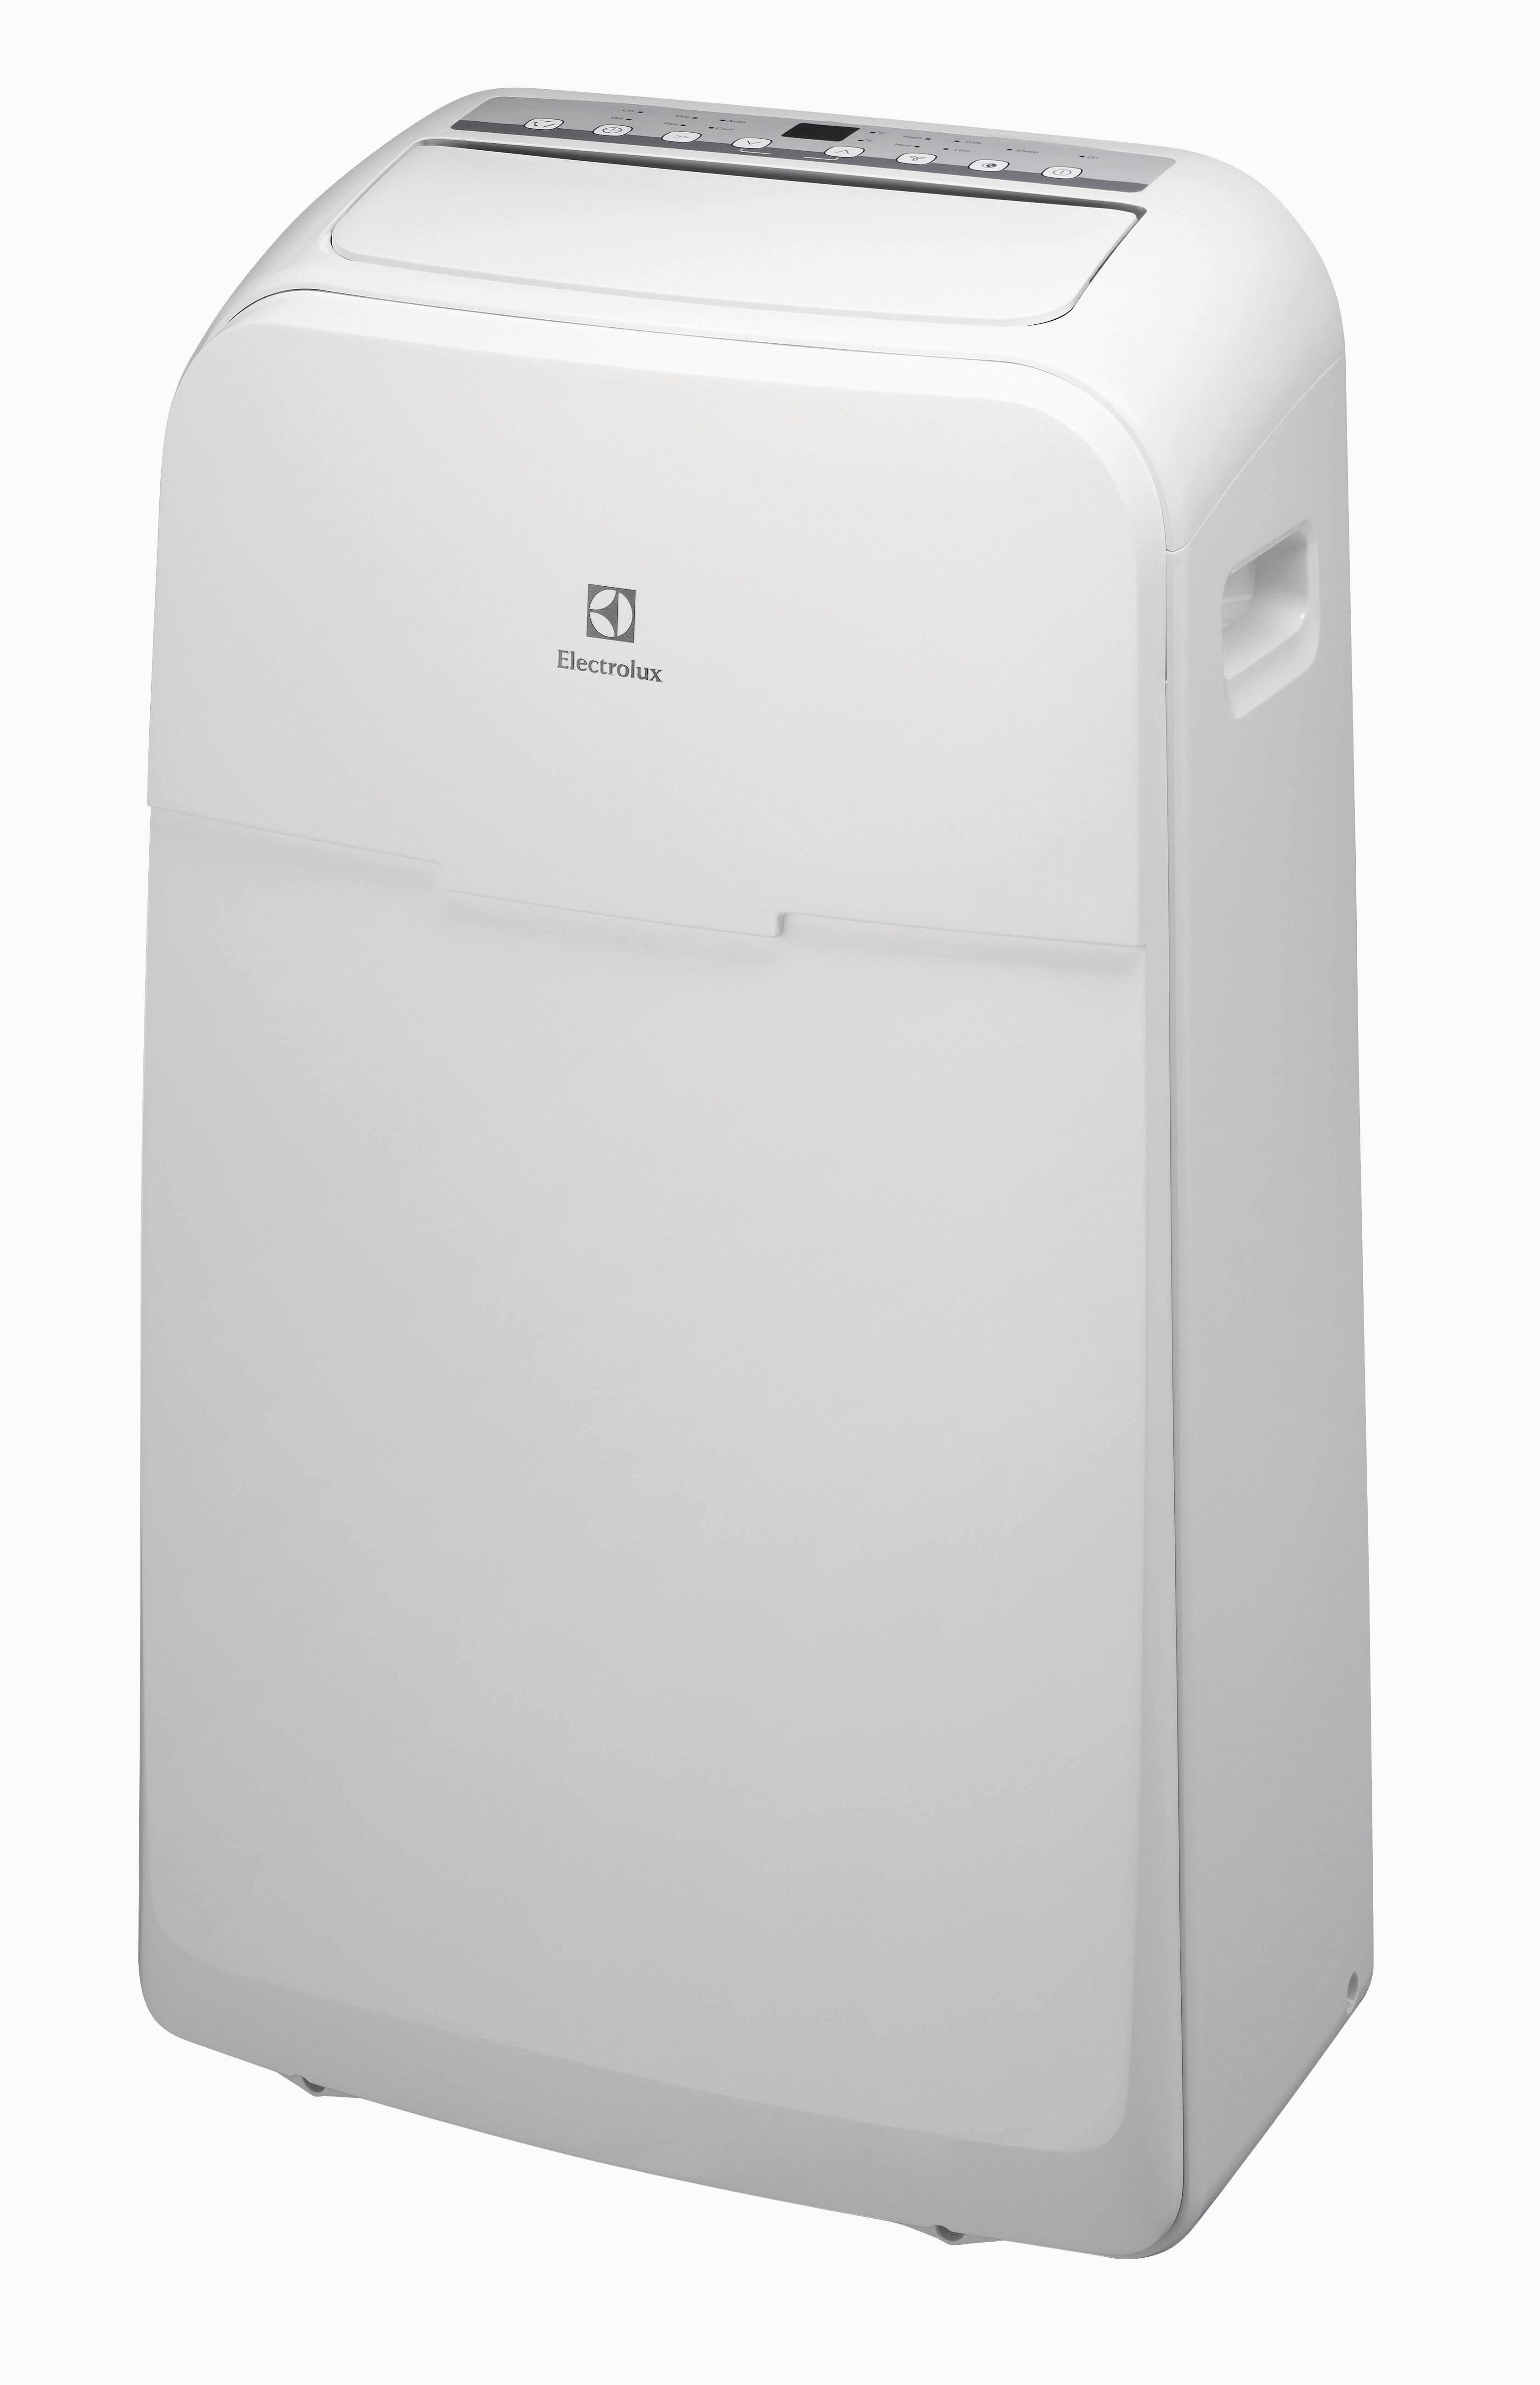 Electrolux Exp09 Compact Cool 9 000btu Portable Air